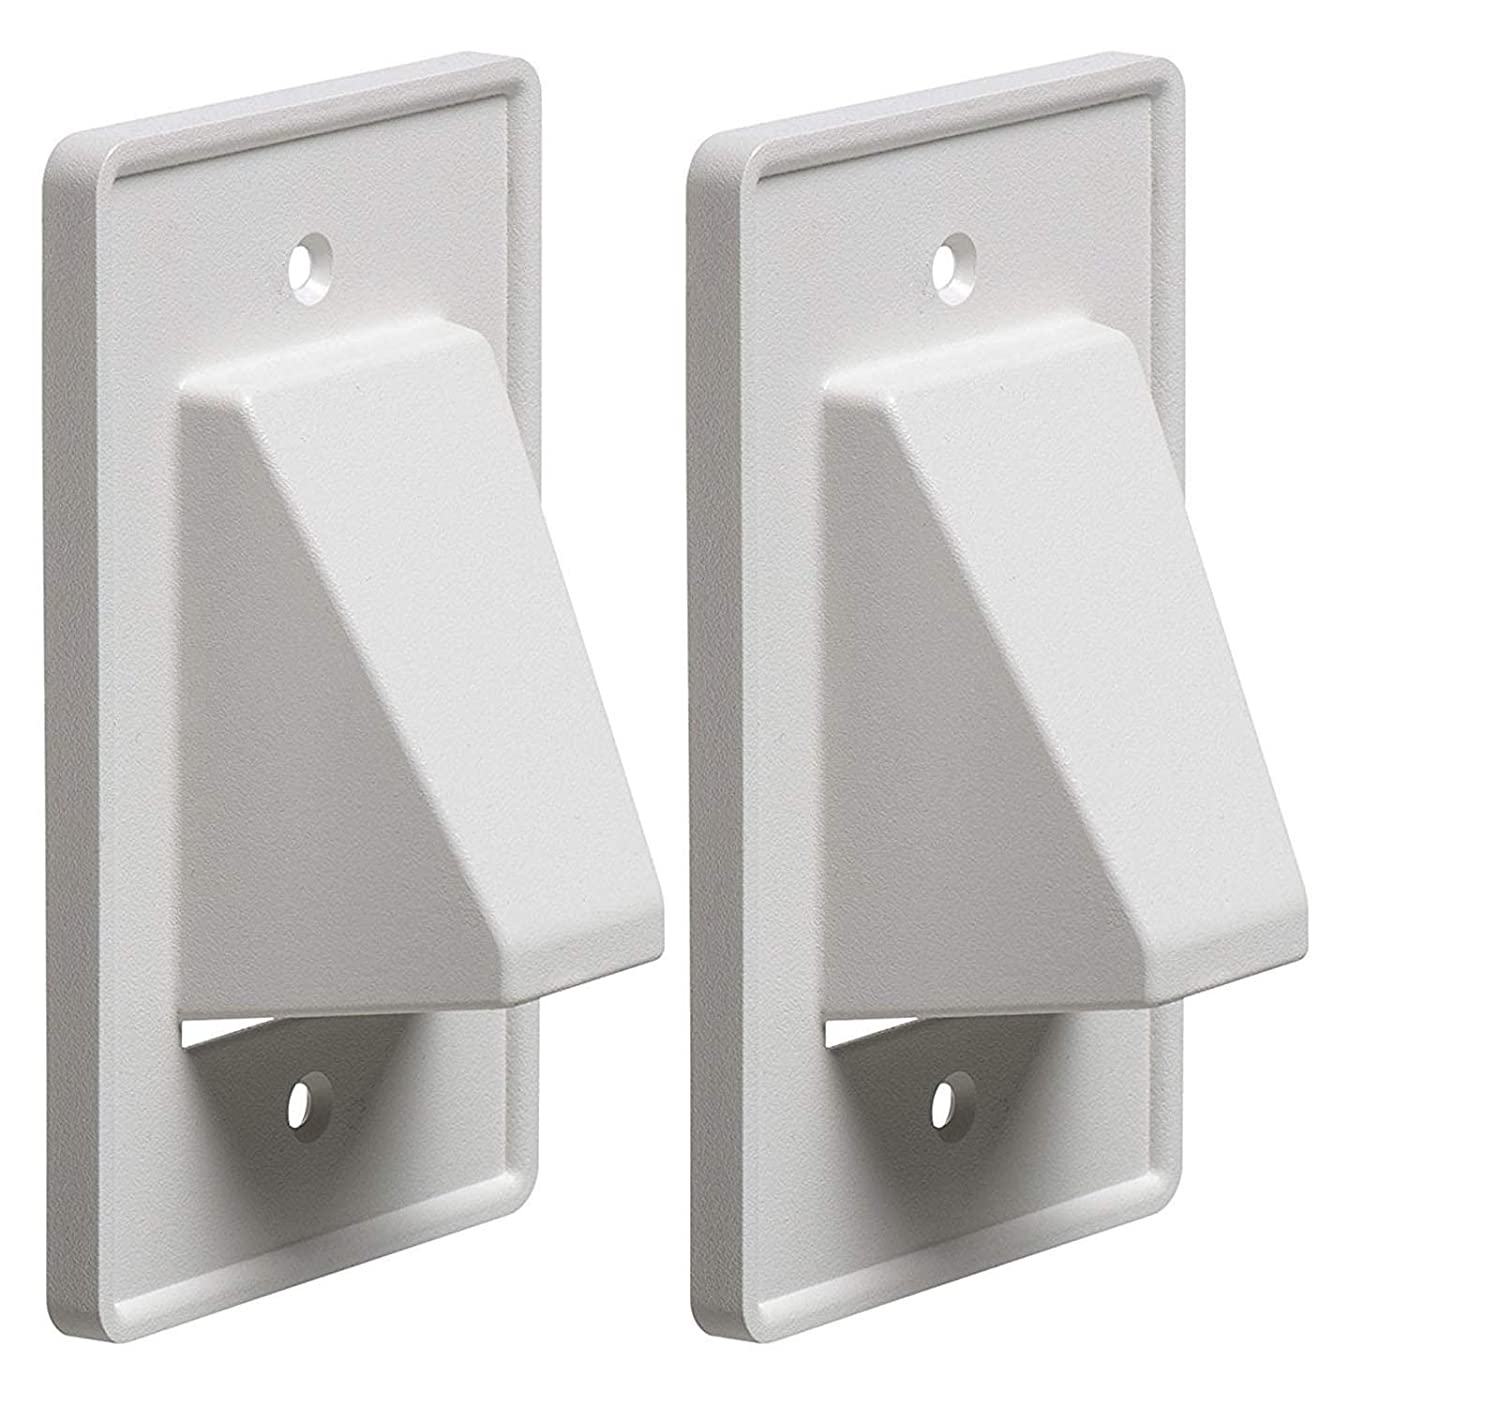 iMBAPrice CE1 2 Recessed Low Voltage Cable Plate 1 Gang White 2 Pack Made in USA